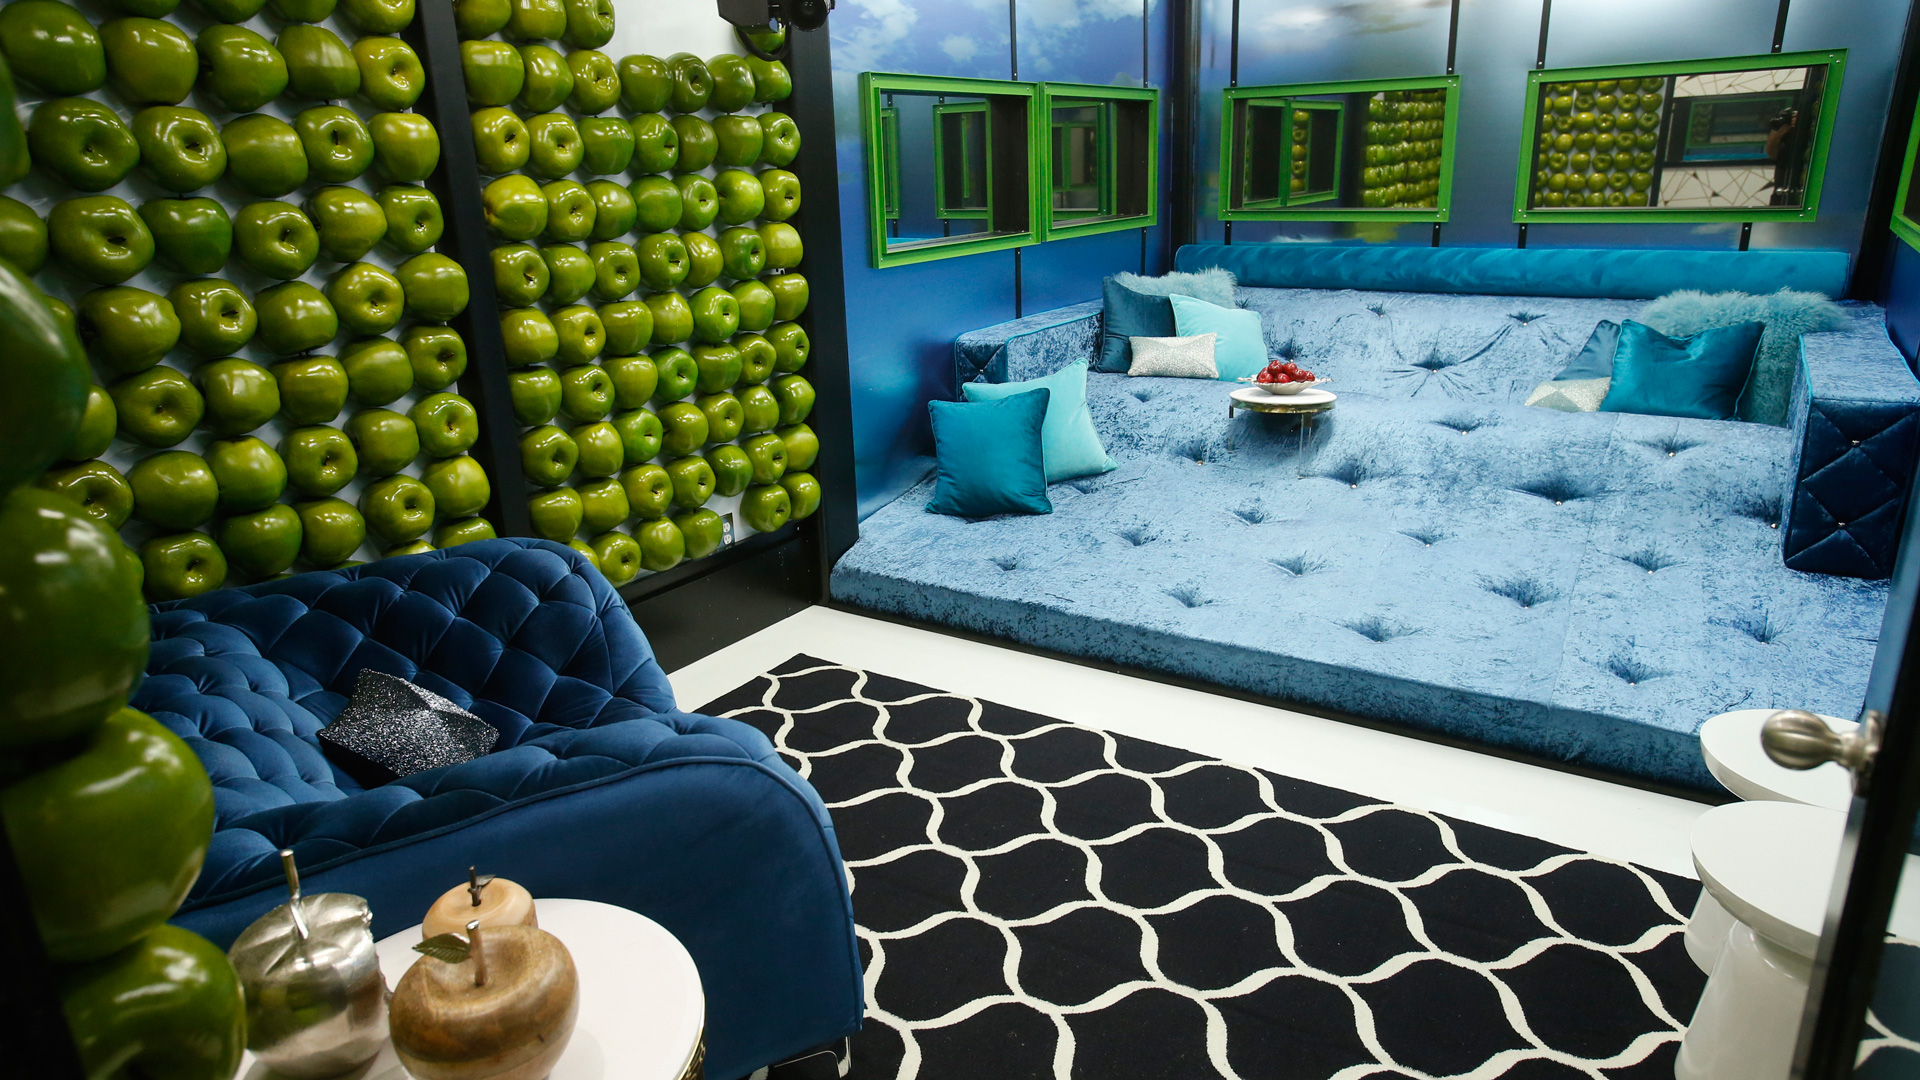 Check out this cozy lounge where the group will kick back.